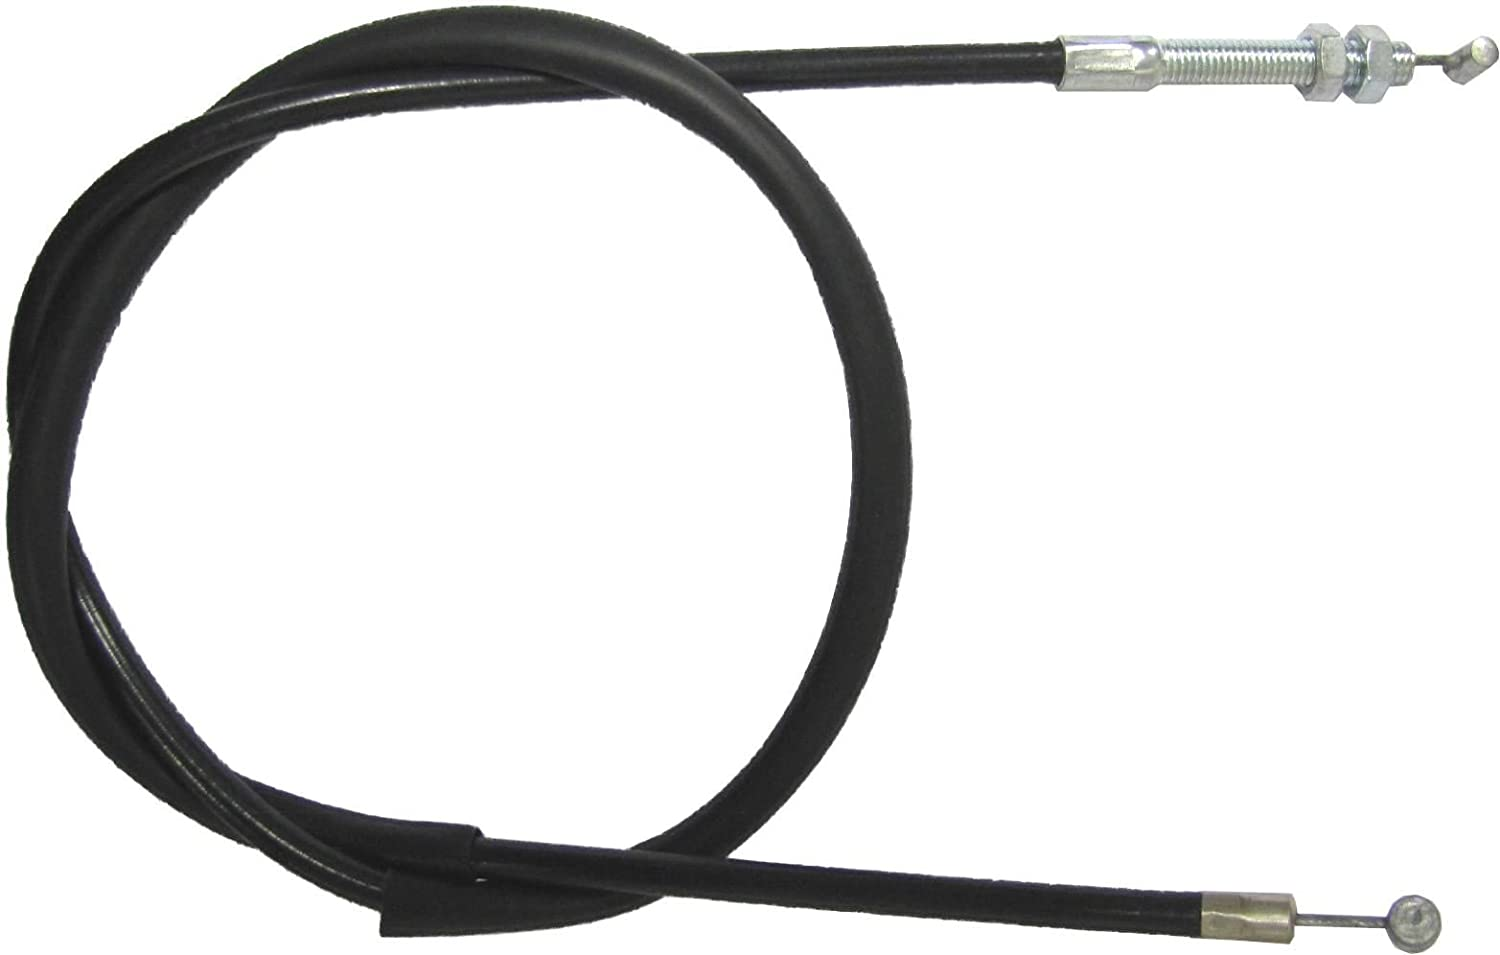 Yamaha YZ 426 Clutch Cable 2000-2002